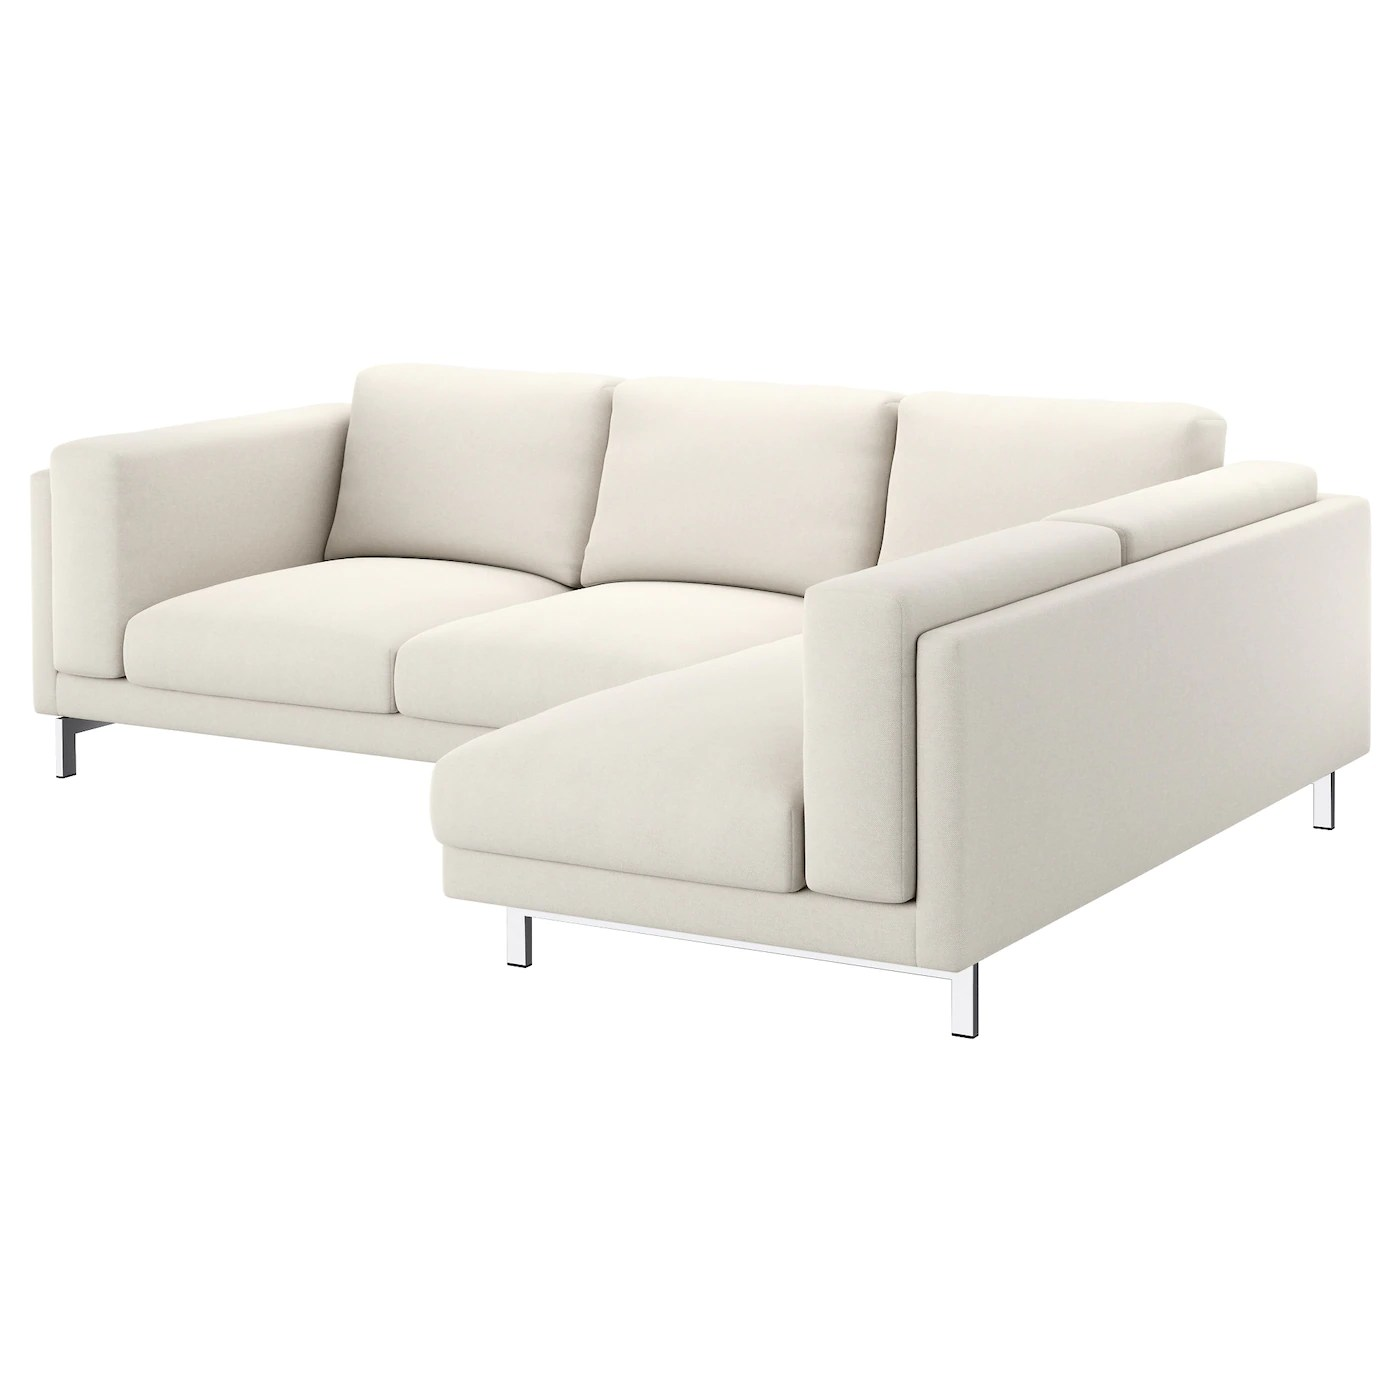 Ikea Nockeby Two Seat Sofa Nockeby Two Seat Sofa W Chaise Longue Right Tallmyra Light